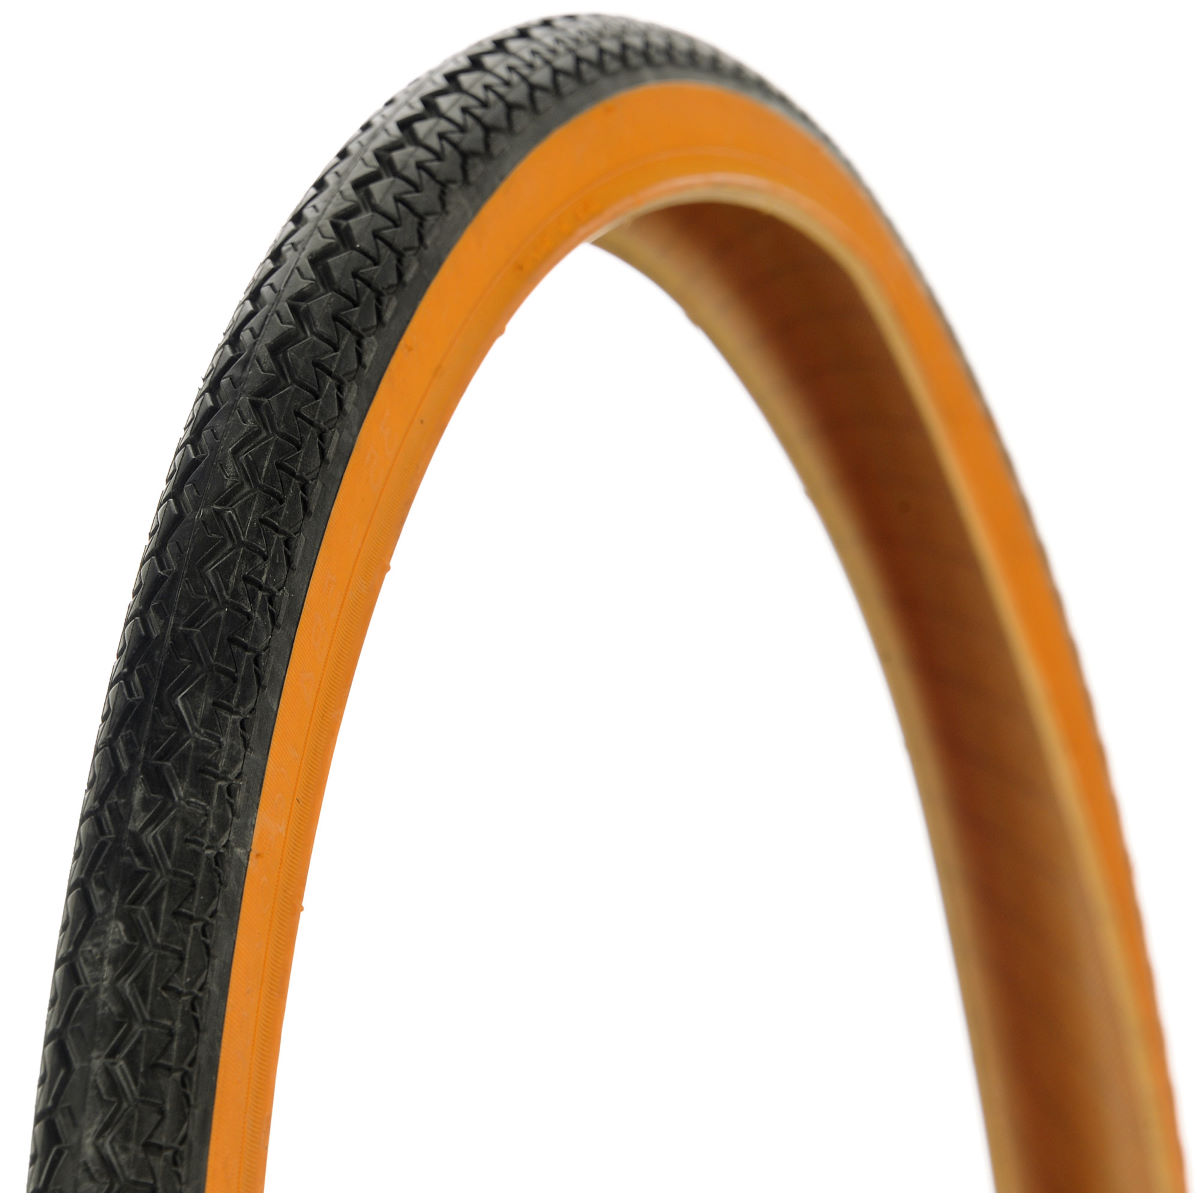 Image of Pneu Michelin World Tour Bike - 700c 35c Wire Bead | Pneus